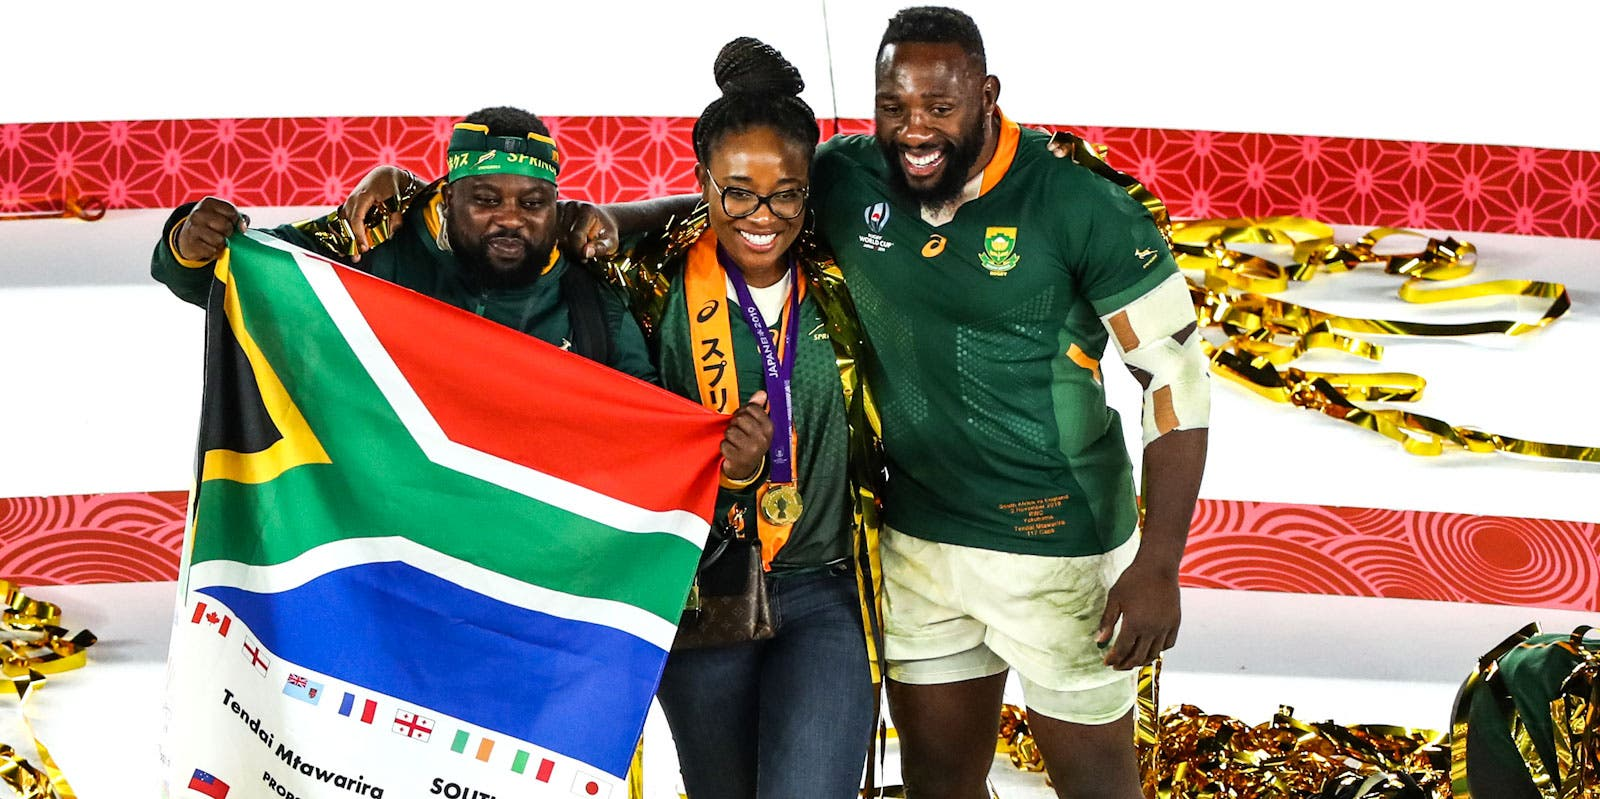 Tendai Mtawarira of South Africa poses for a photo with family as they celebrate their team's victory after the Rugby World Cup 2019 Final between England and South Africa at International Stadium Yokohama on November 02, 2019 in Yokohama, Kanagawa, Japan. (Photo by Michael Steele/Getty Images)